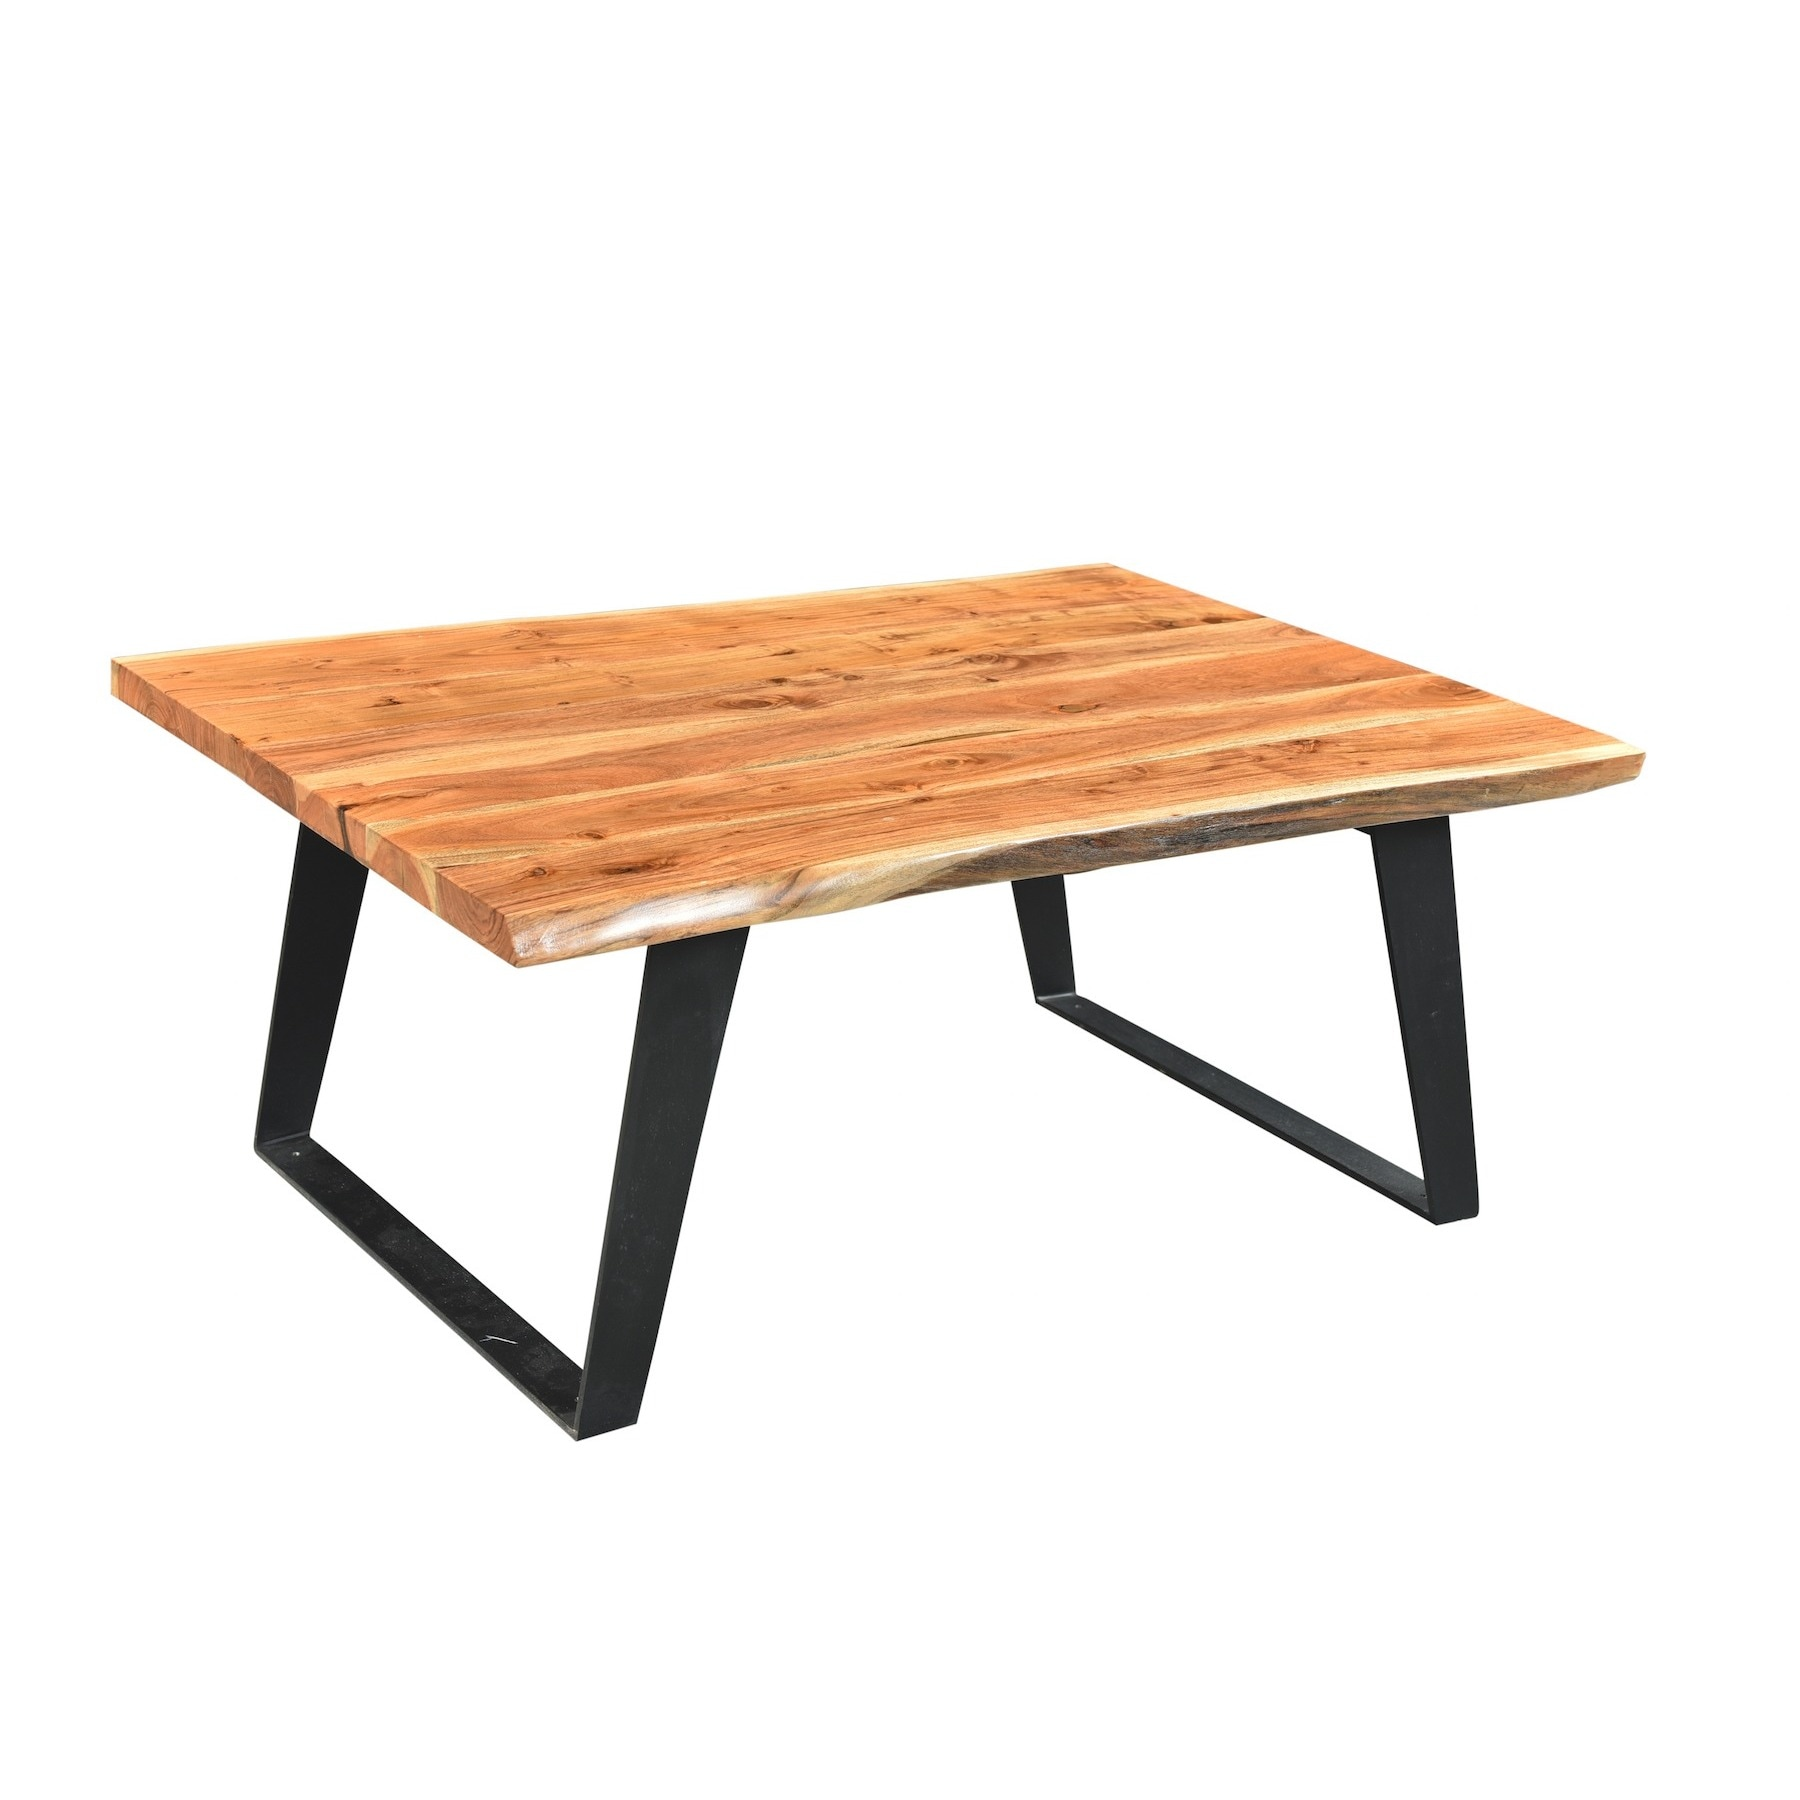 Timbergirl solid wood live edge coffee table (16H x 45W x...